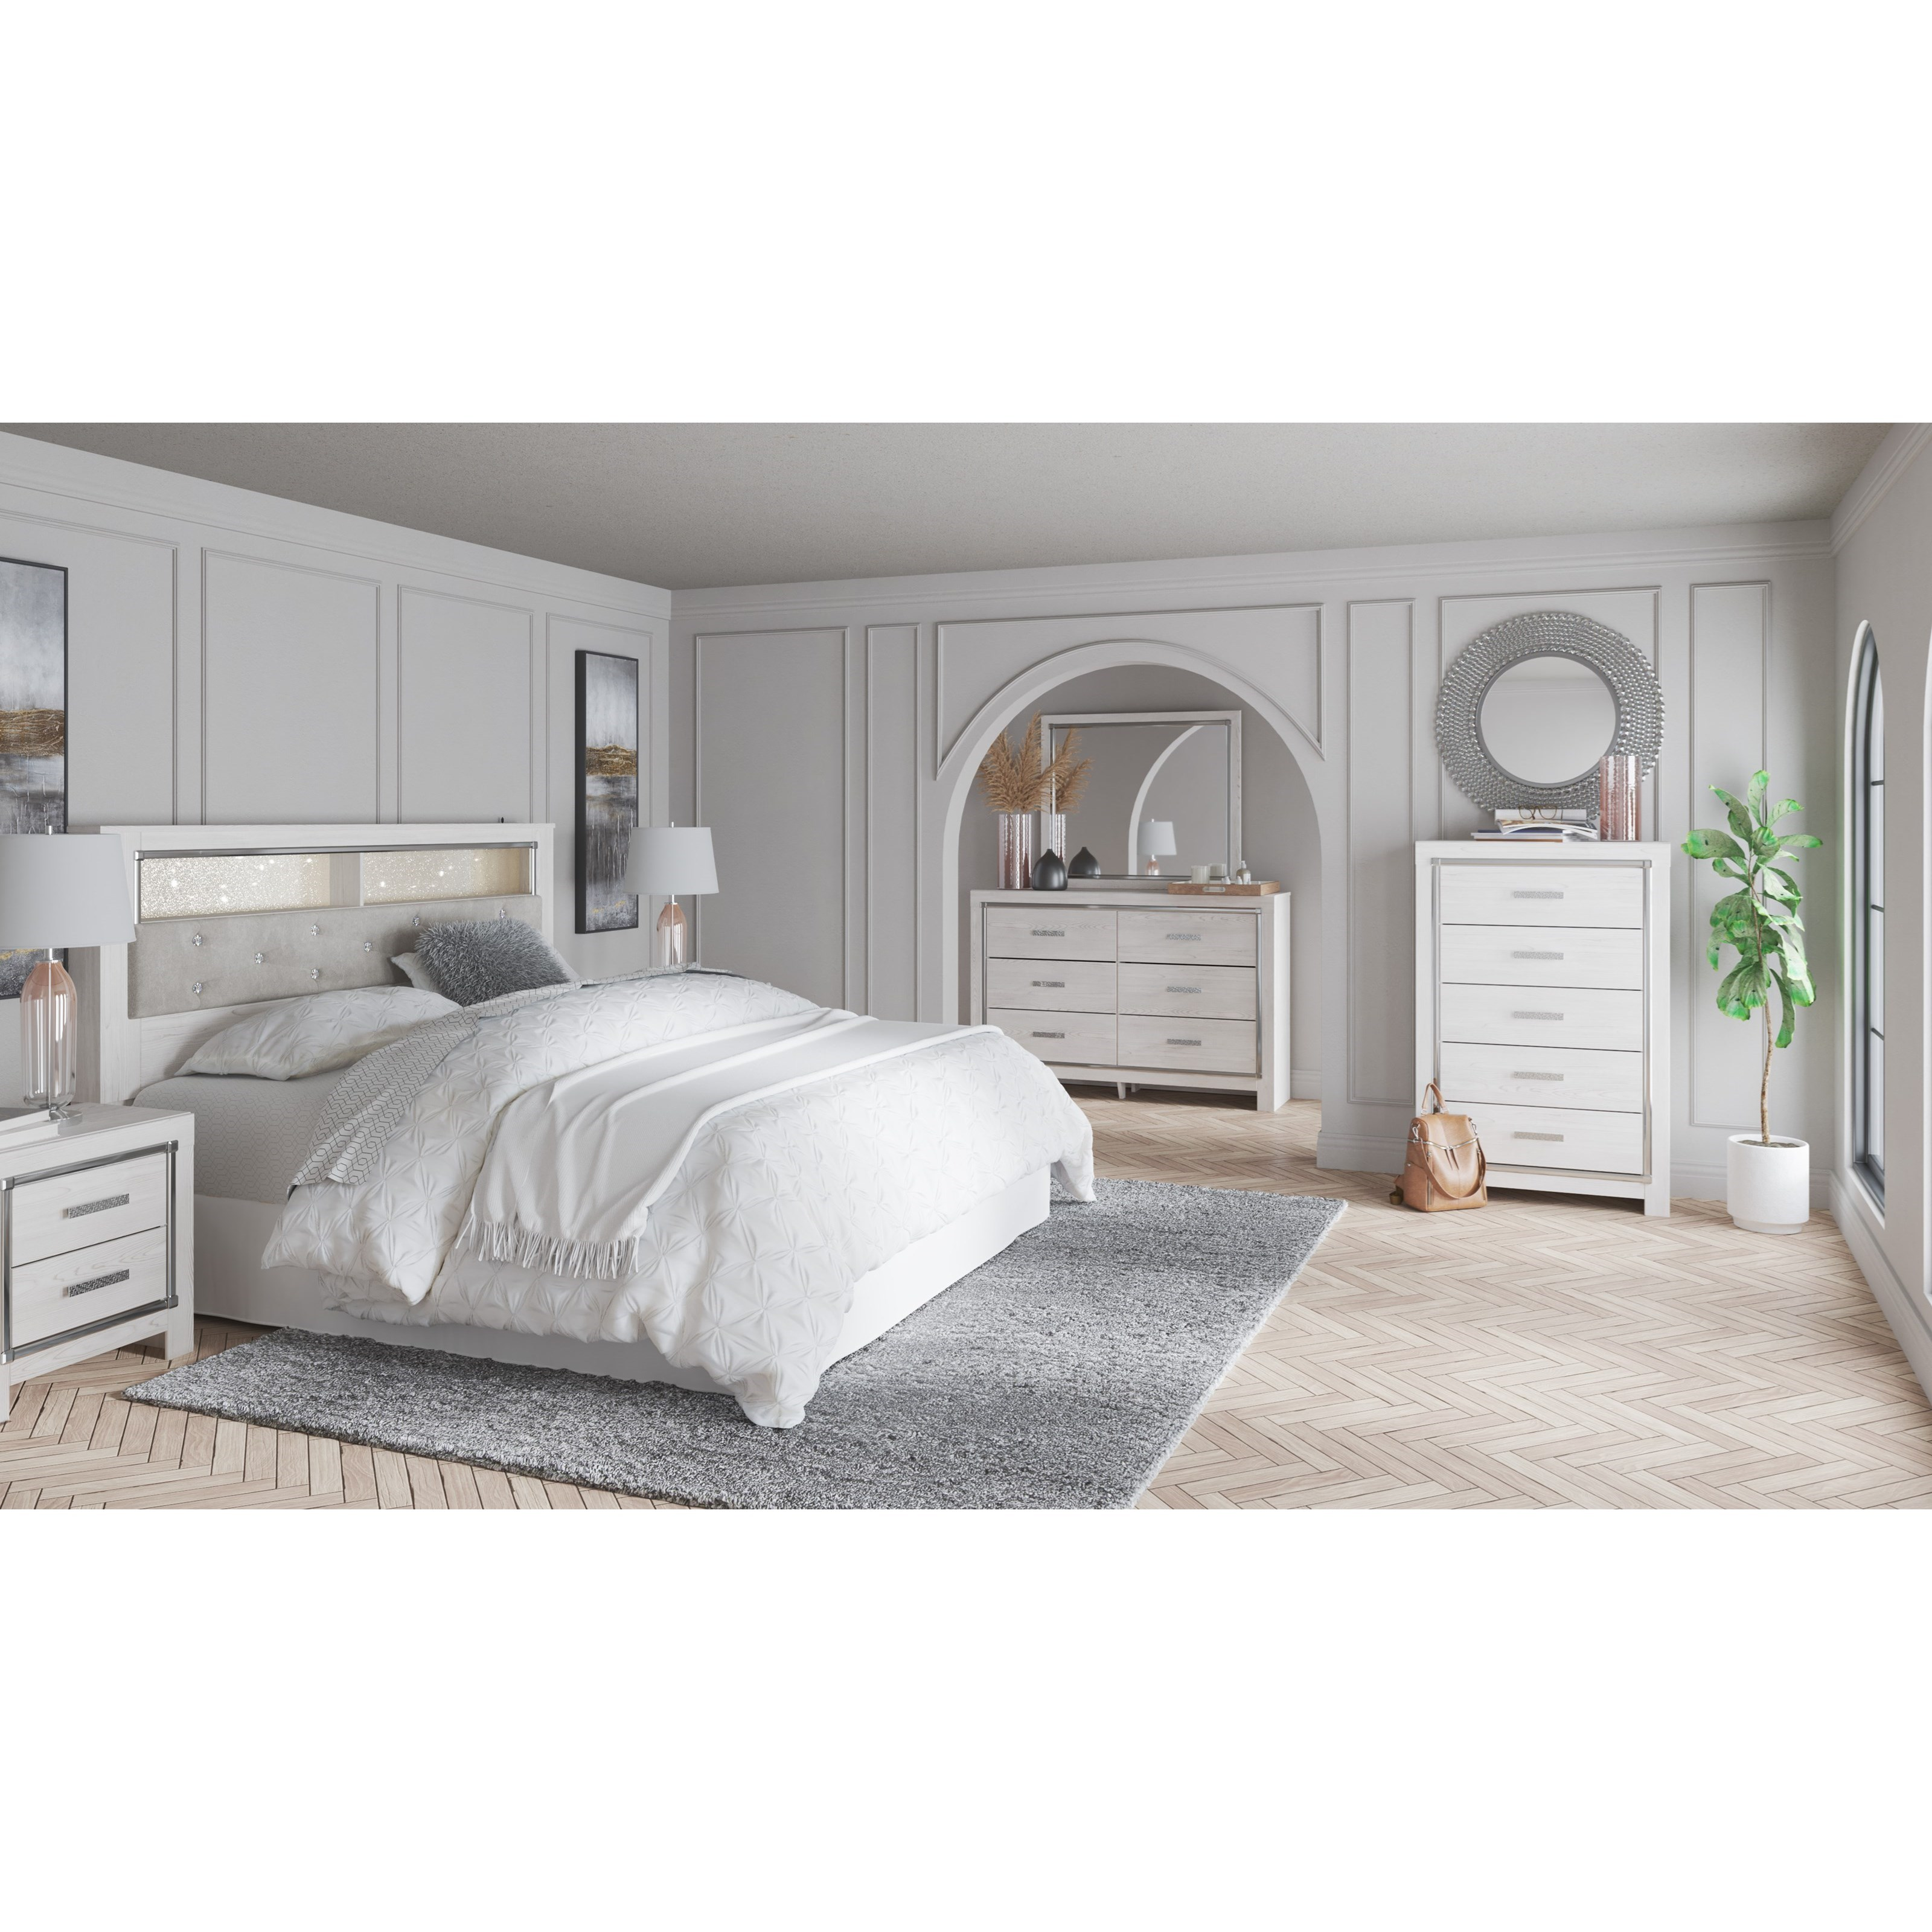 Altyra King Bedroom Group by Signature Design by Ashley at Catalog Outlet